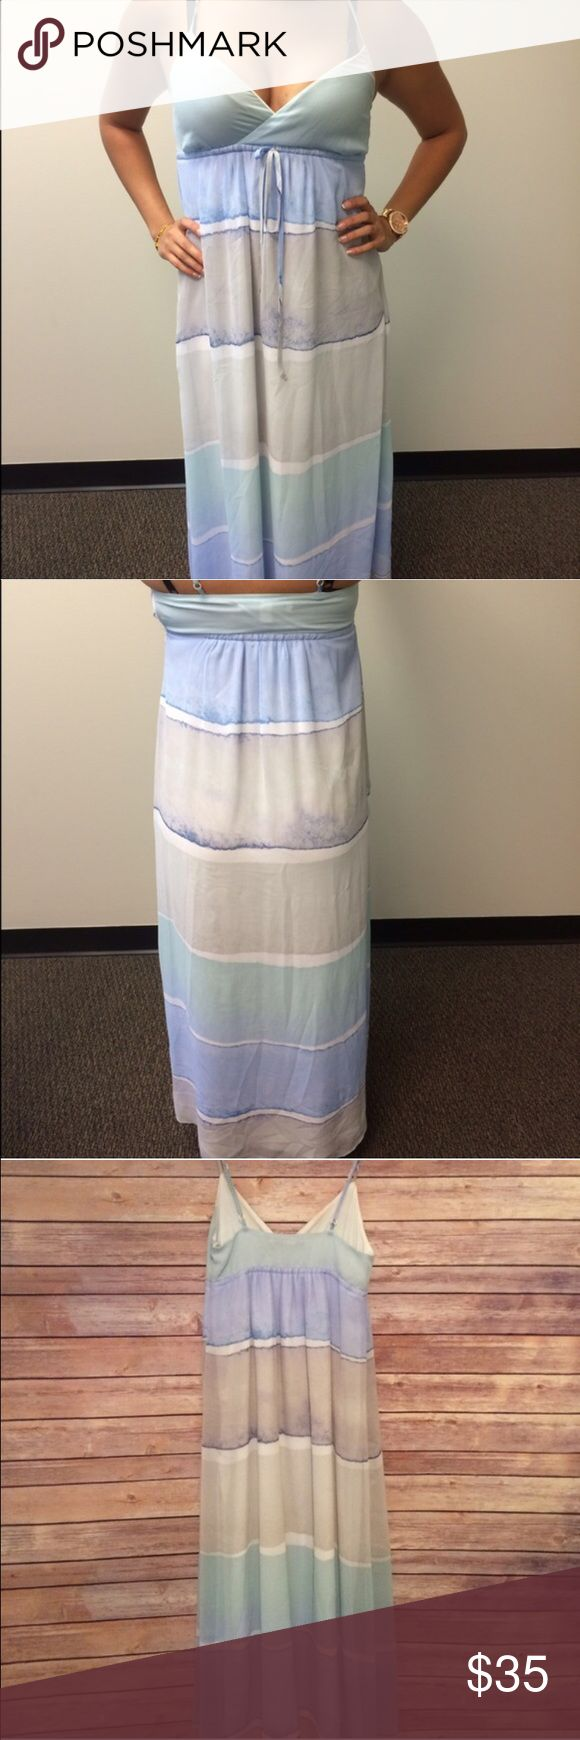 💚 Ocean inspired maxi dress Beautiful nautical maxi dress striped with sheer overlay. Armpit to hem is 43.5 inches and has adjustable straps. Have questions on the size? Ask! I'm happy to provide all measurements! No swaps! LC Lauren Conrad Dresses Maxi